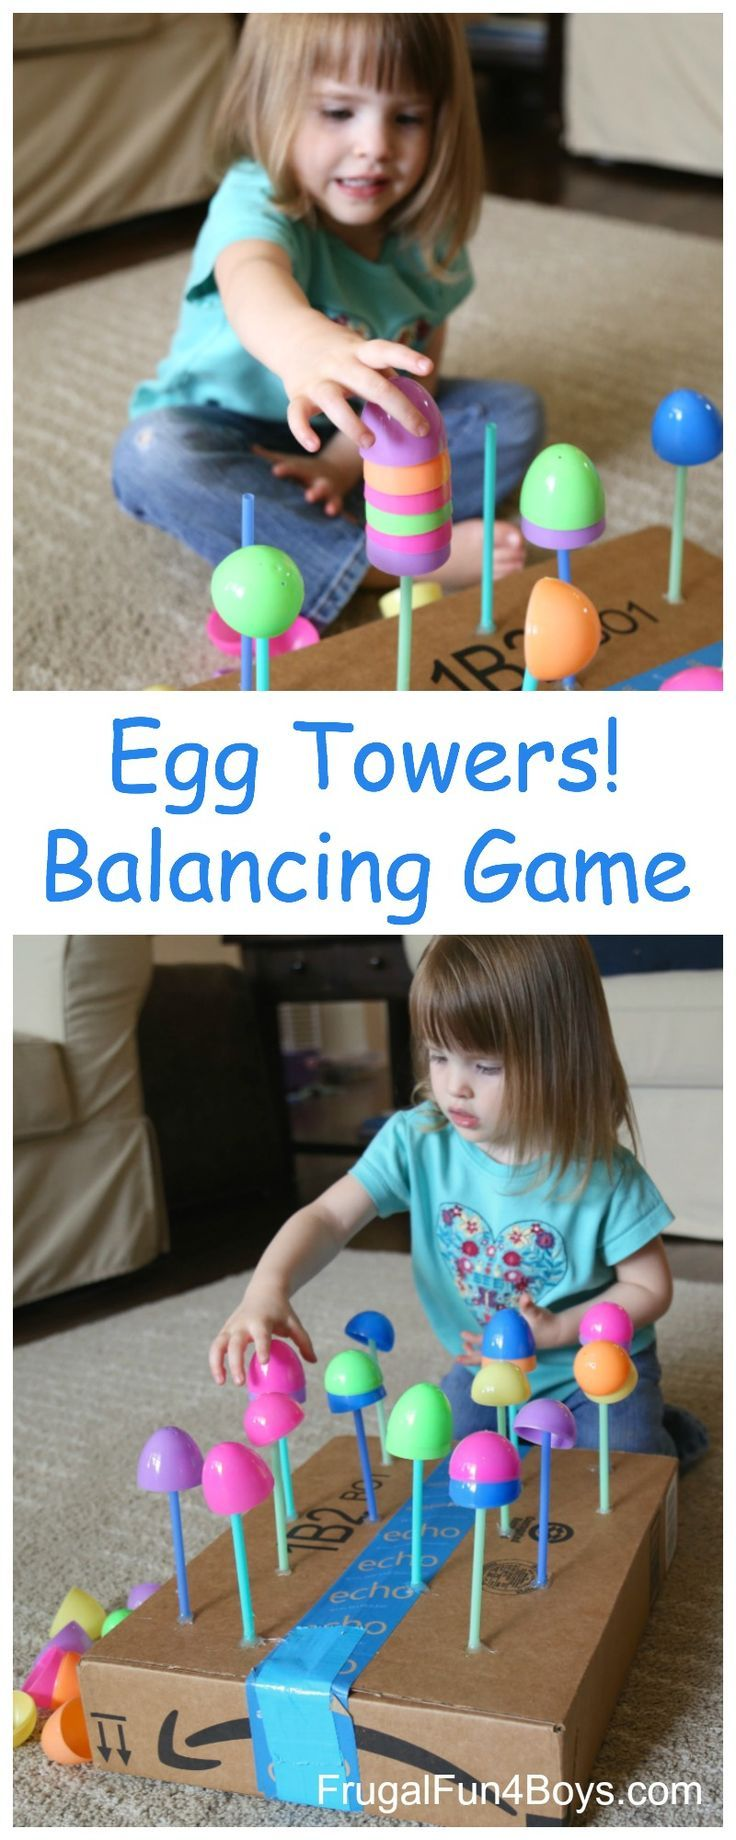 Easter ideas part 3 of 3 real deep stuff - Egg Towers Fine Motor Balancing Game